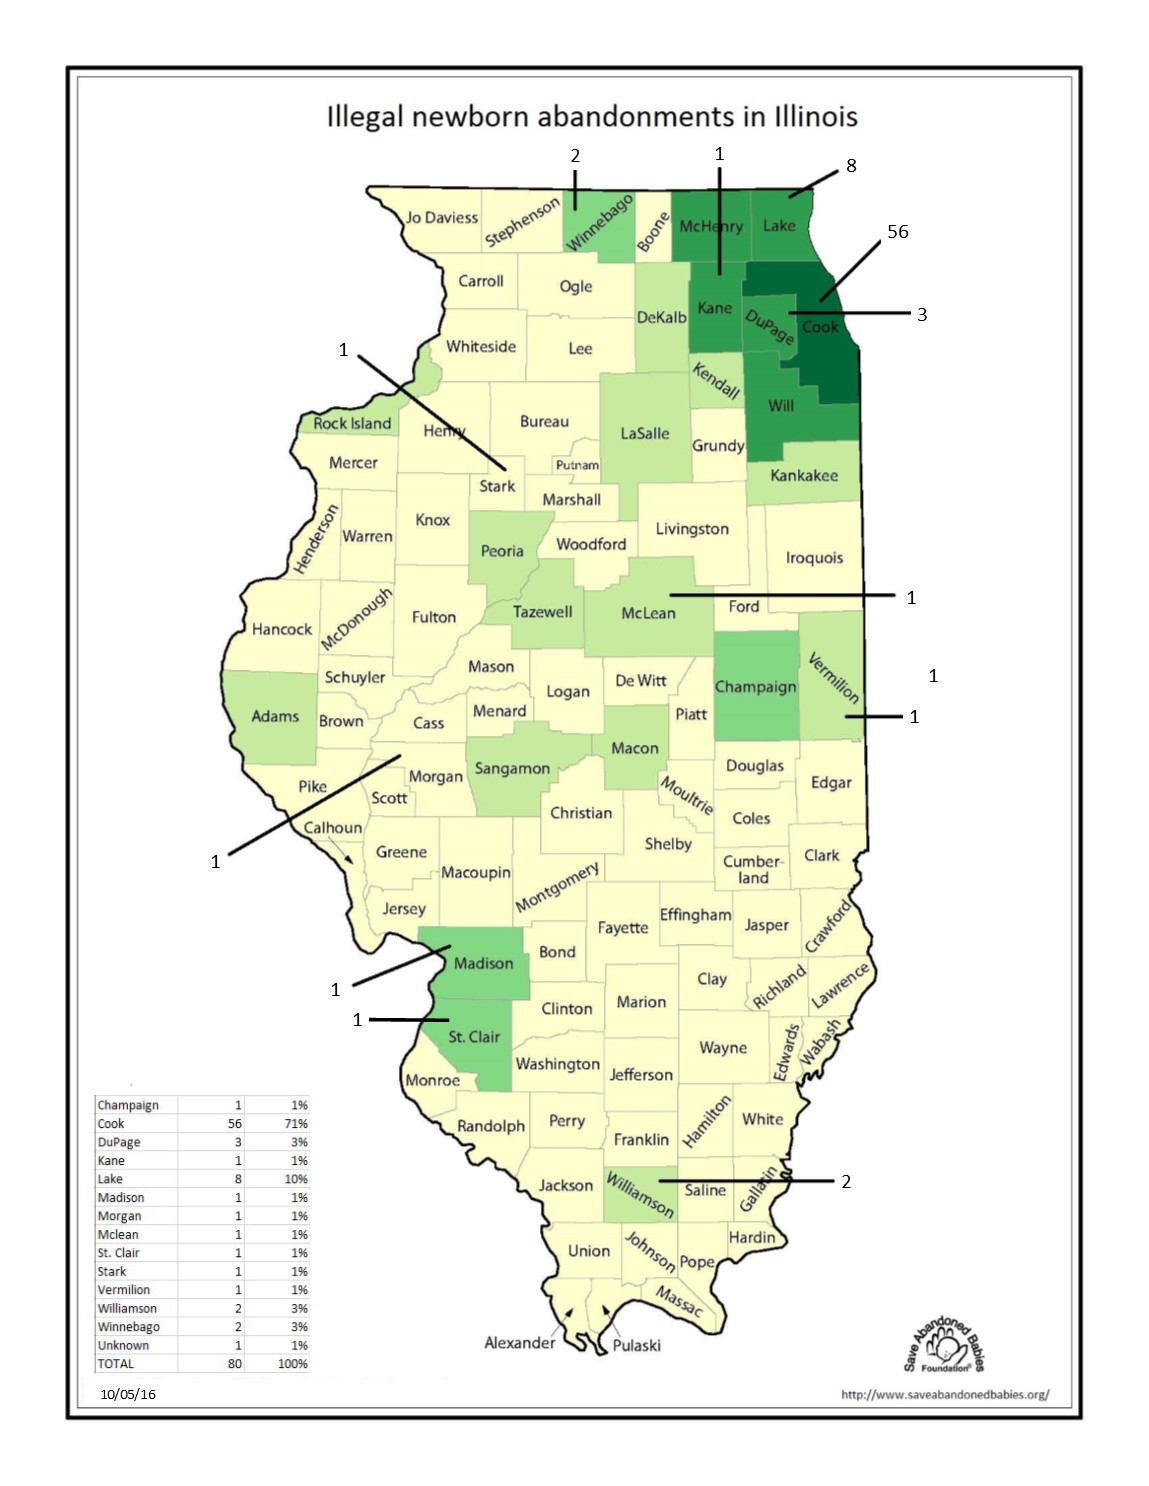 County Map of Illegal 10-05-16